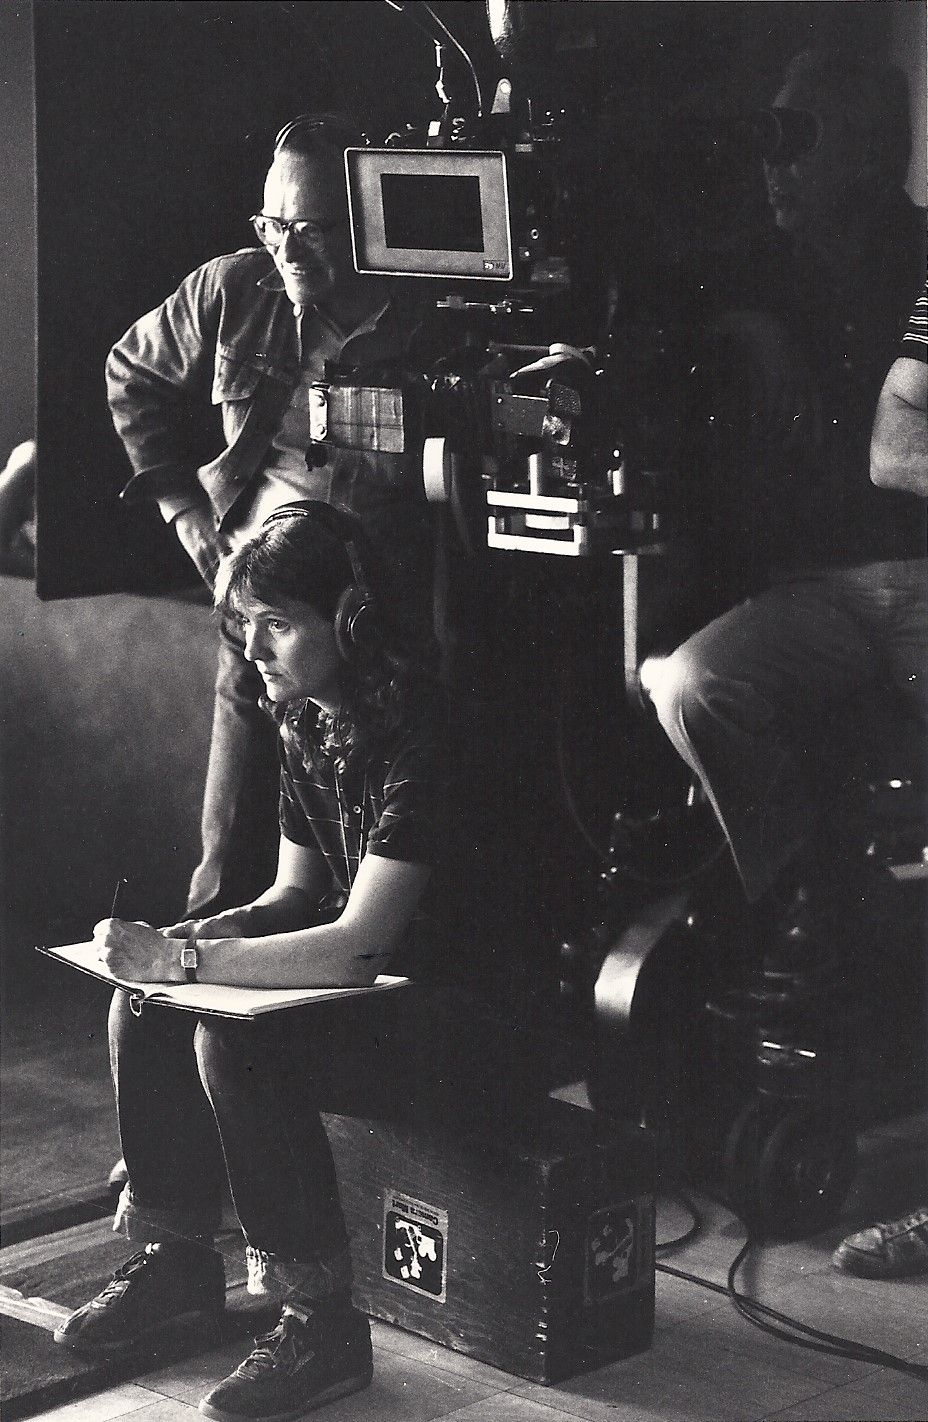 Sidney Lumet and Martha Pinson on the set of 'Power,' 1985. Photo Credit: Kerry Hayes